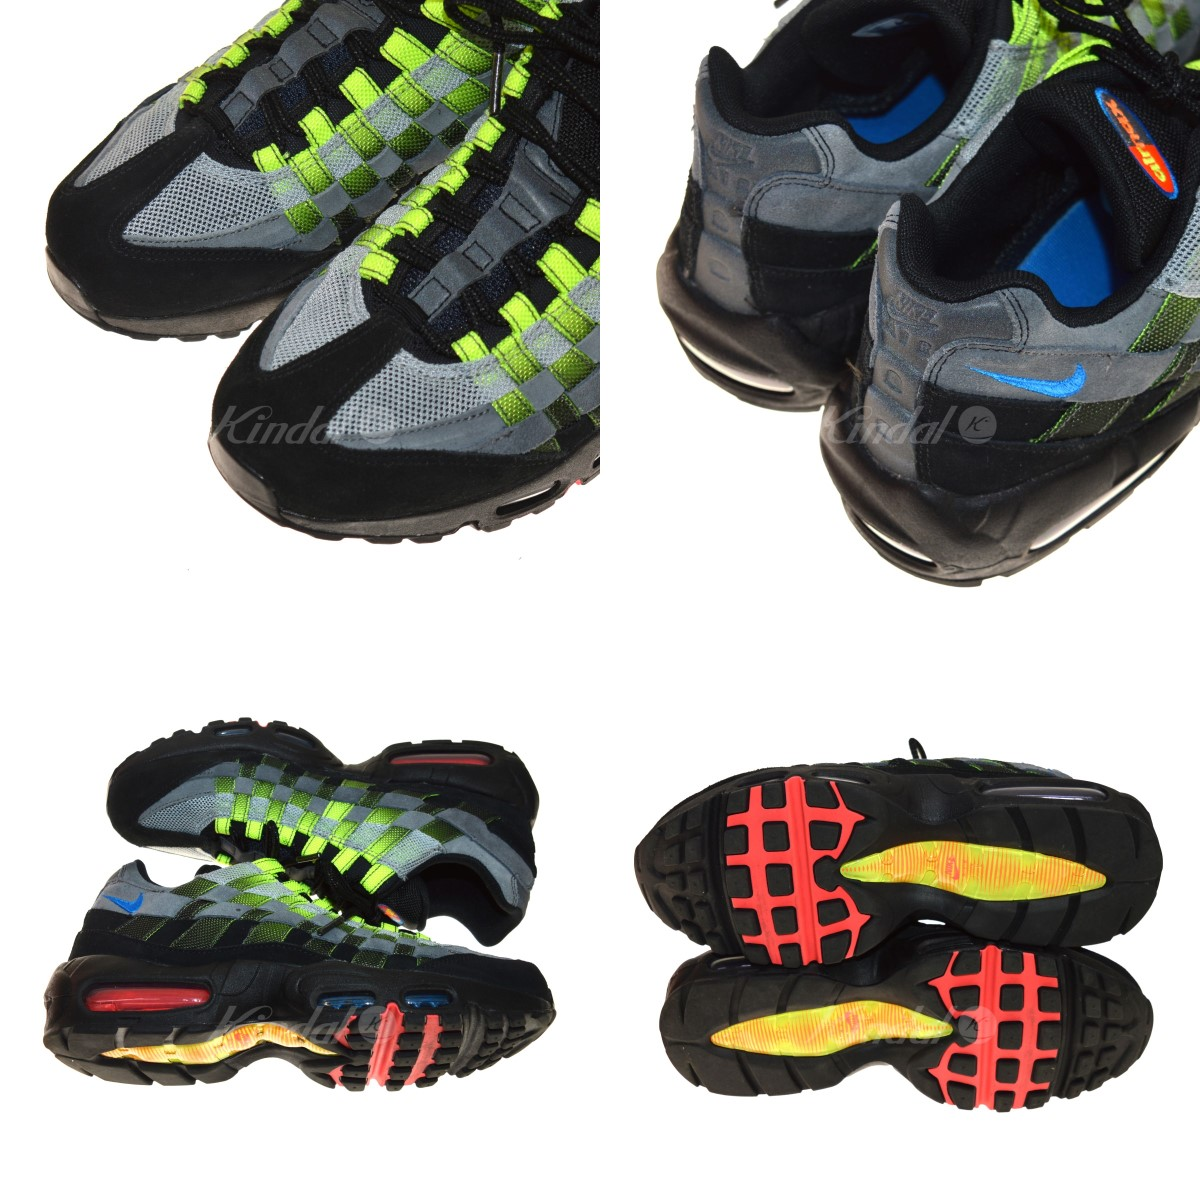 NIKE AIR MAX 95 WOVEN sneakers black size: 26. 5